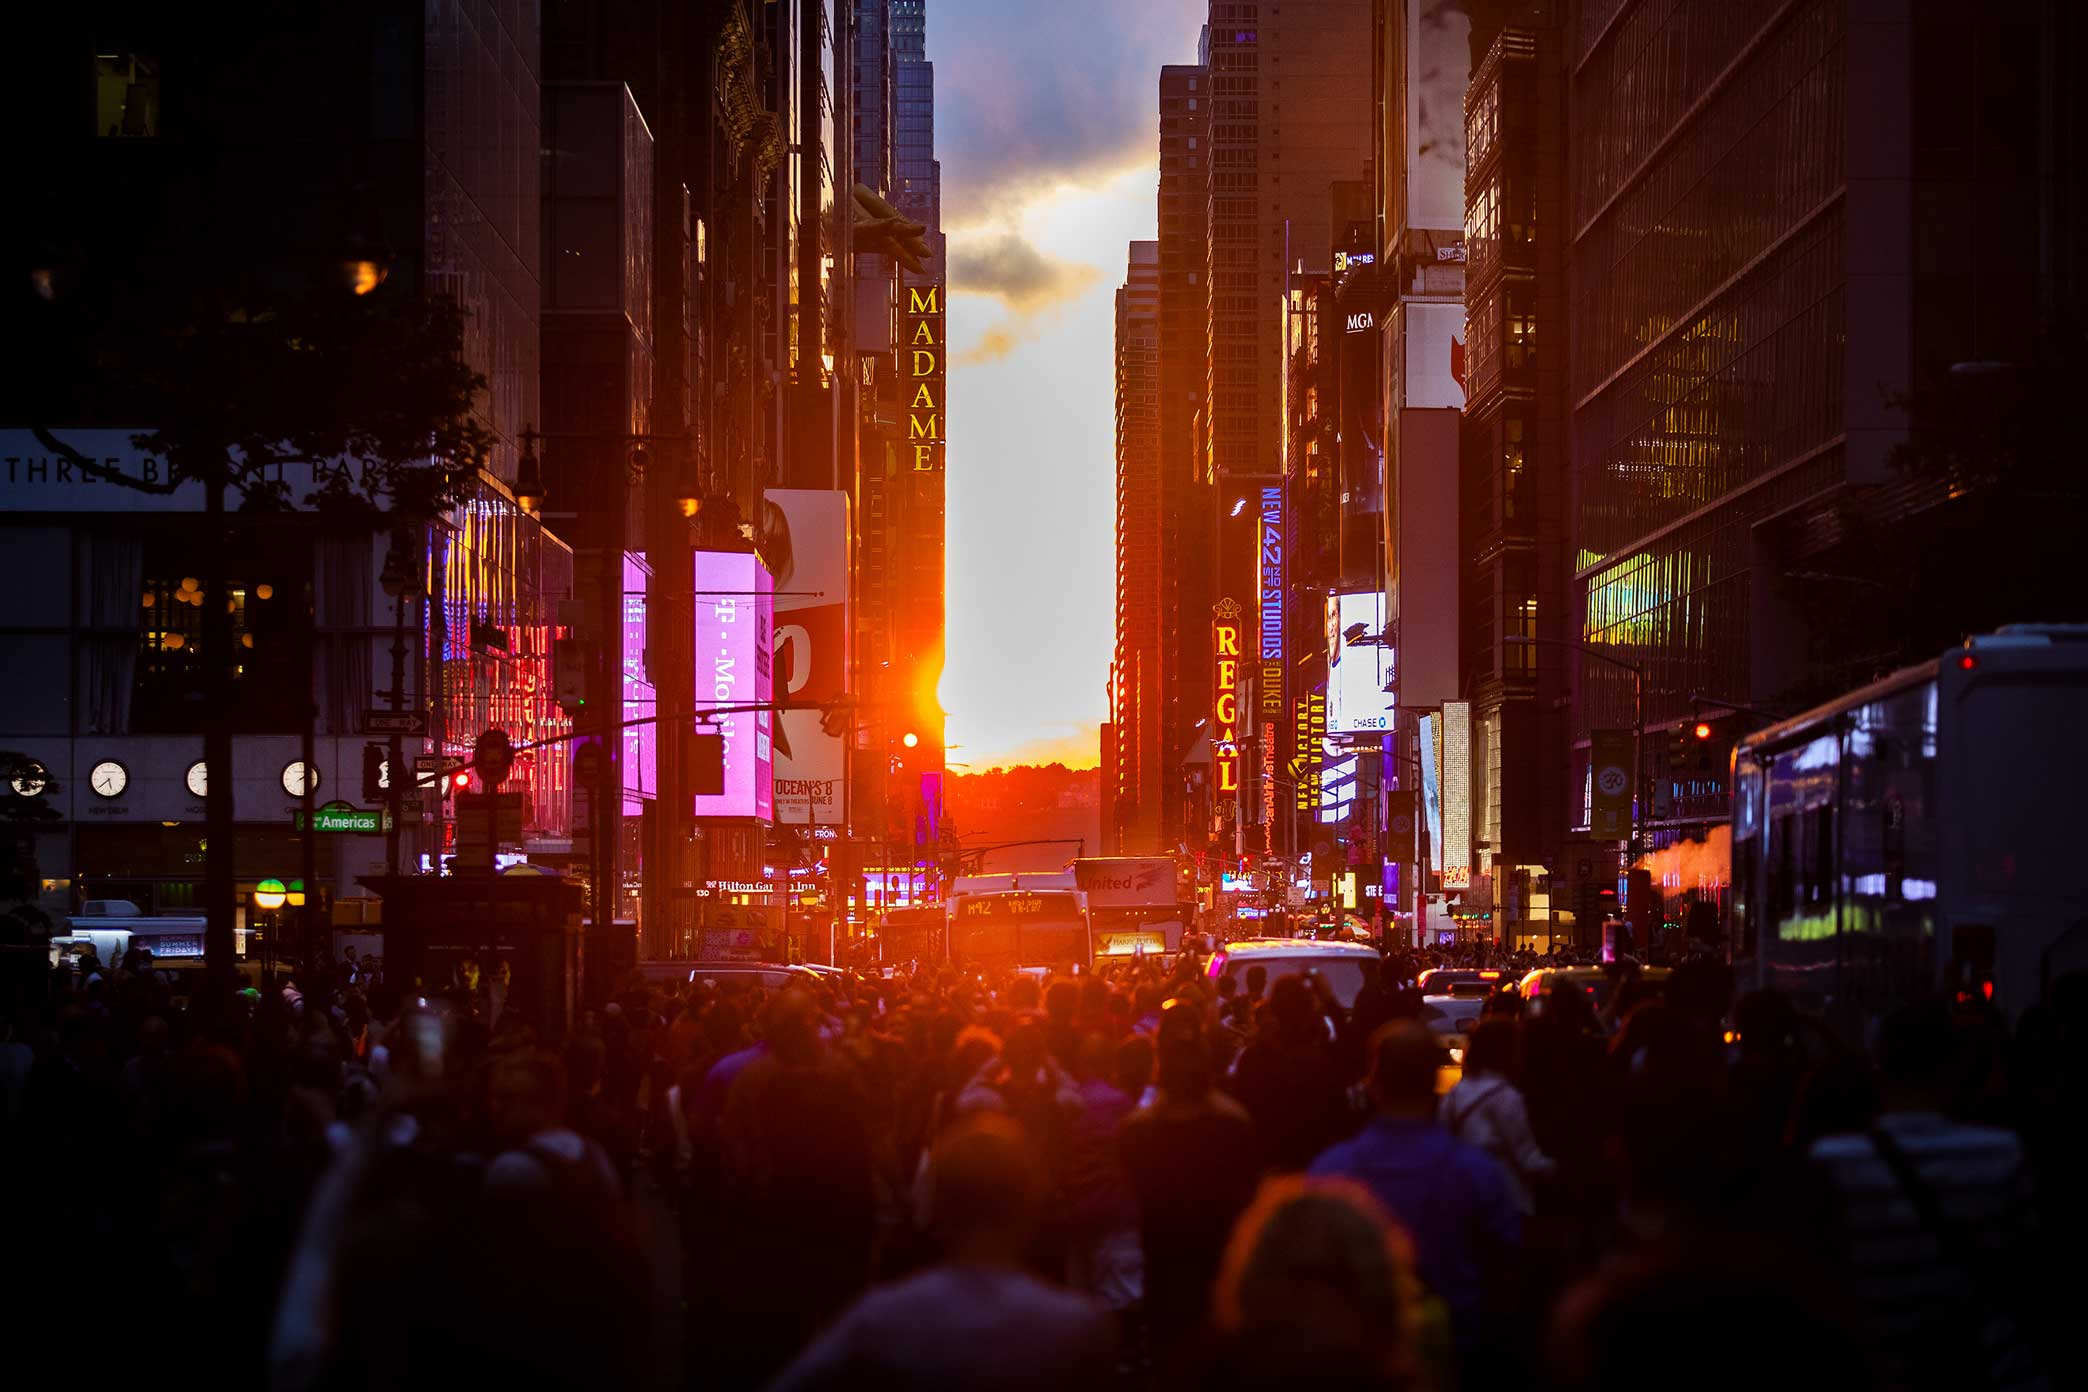 The sun sets over 42nd street in New York.